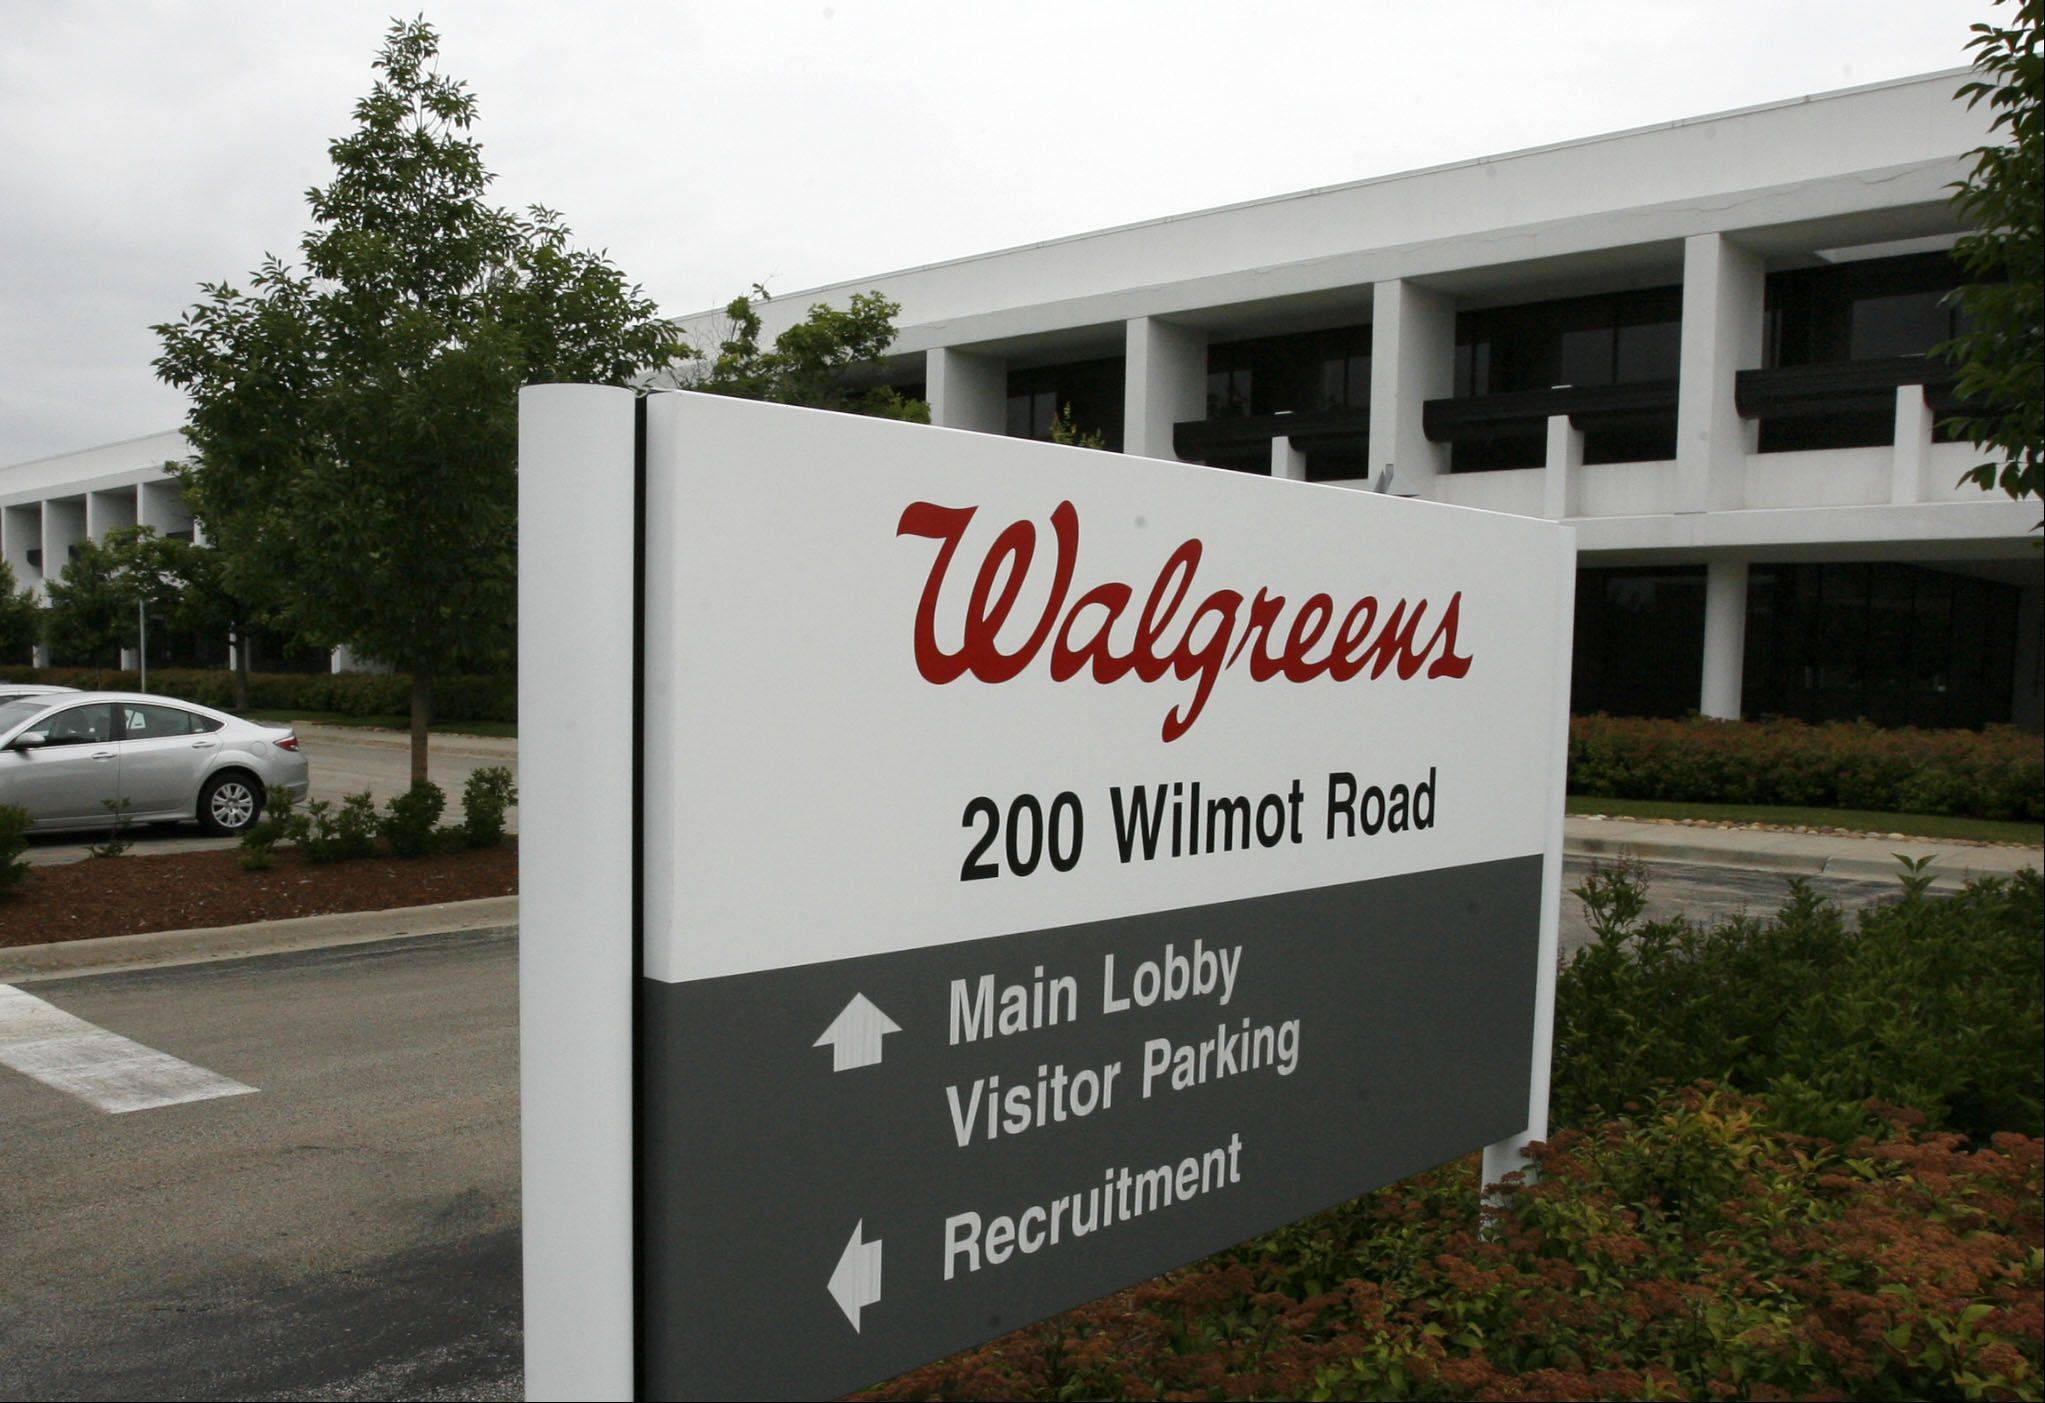 Walgreen Co.�s fiscal fourth-quarter earnings soared 86 percent, as the nation�s largest drugstore chain booked gains from its method of inventory accounting and its acquisition of a stake in European health and beauty retailer Alliance Boots.